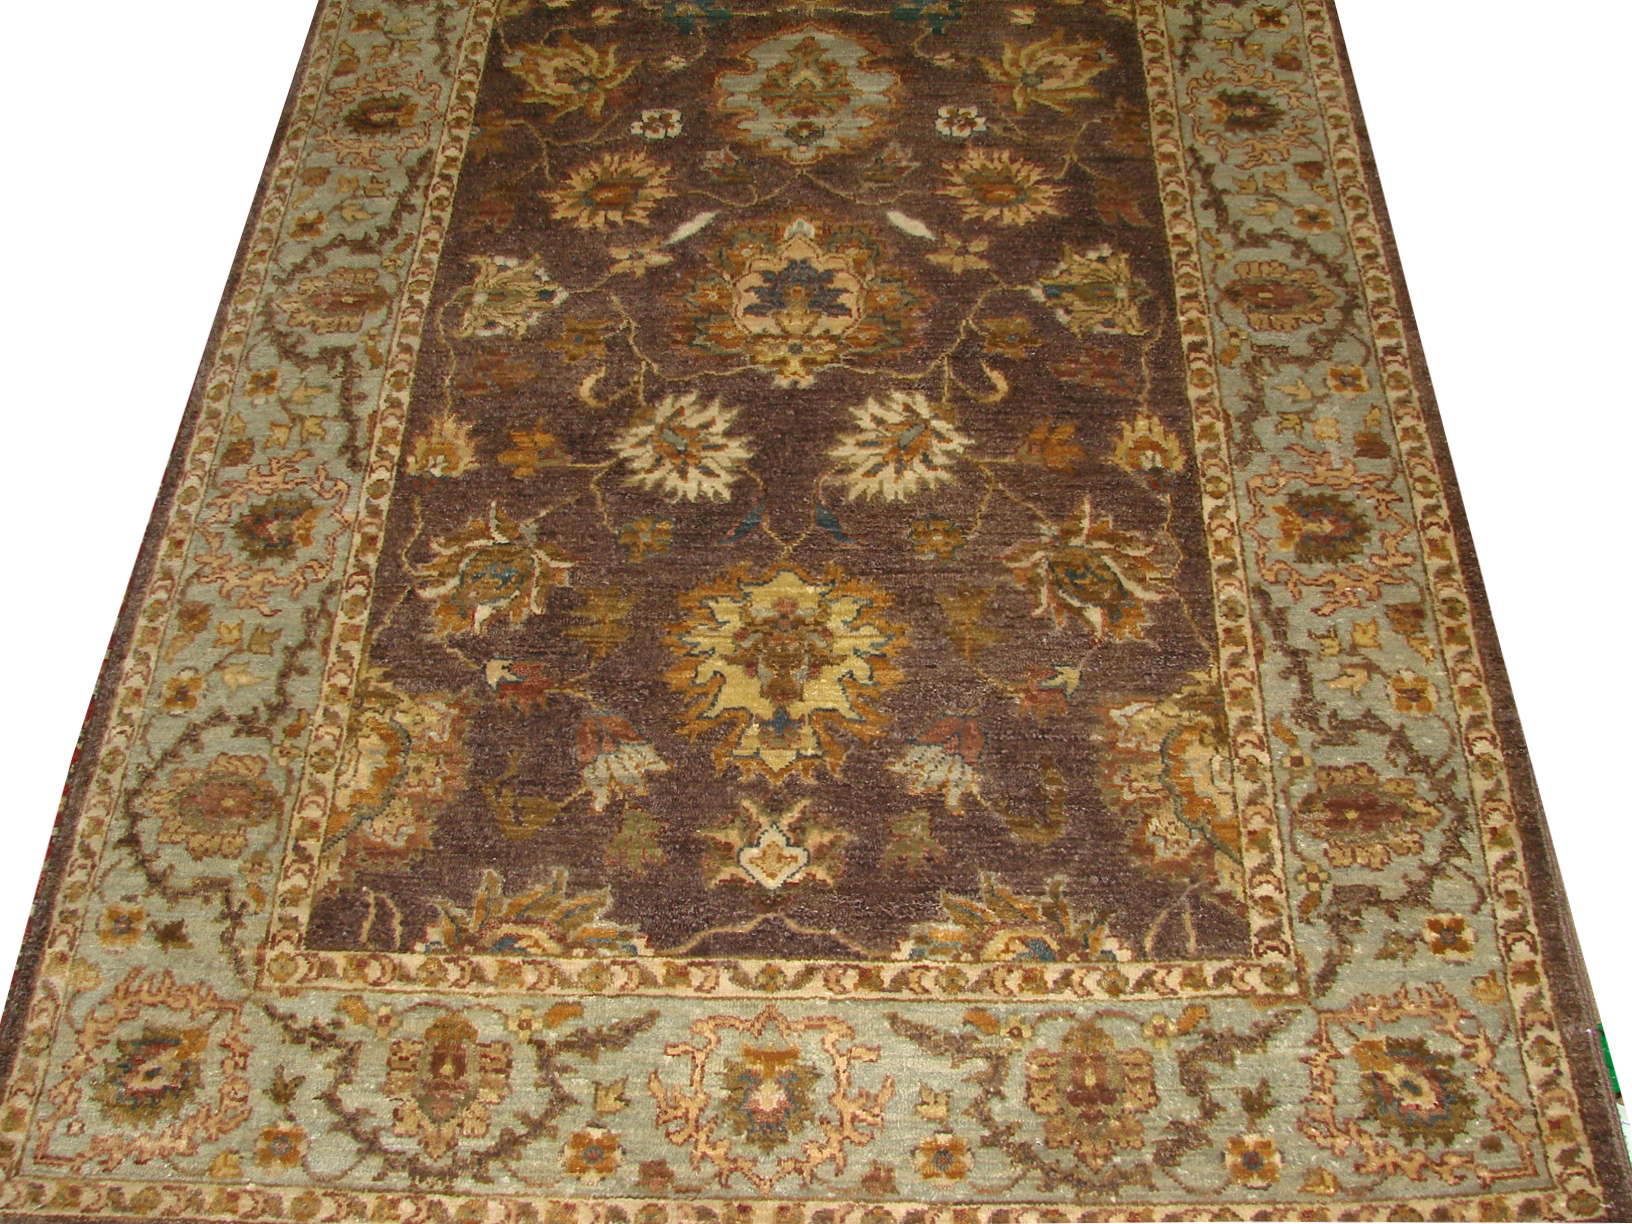 4x6 Traditional Hand Knotted Wool Area Rug - MR14639